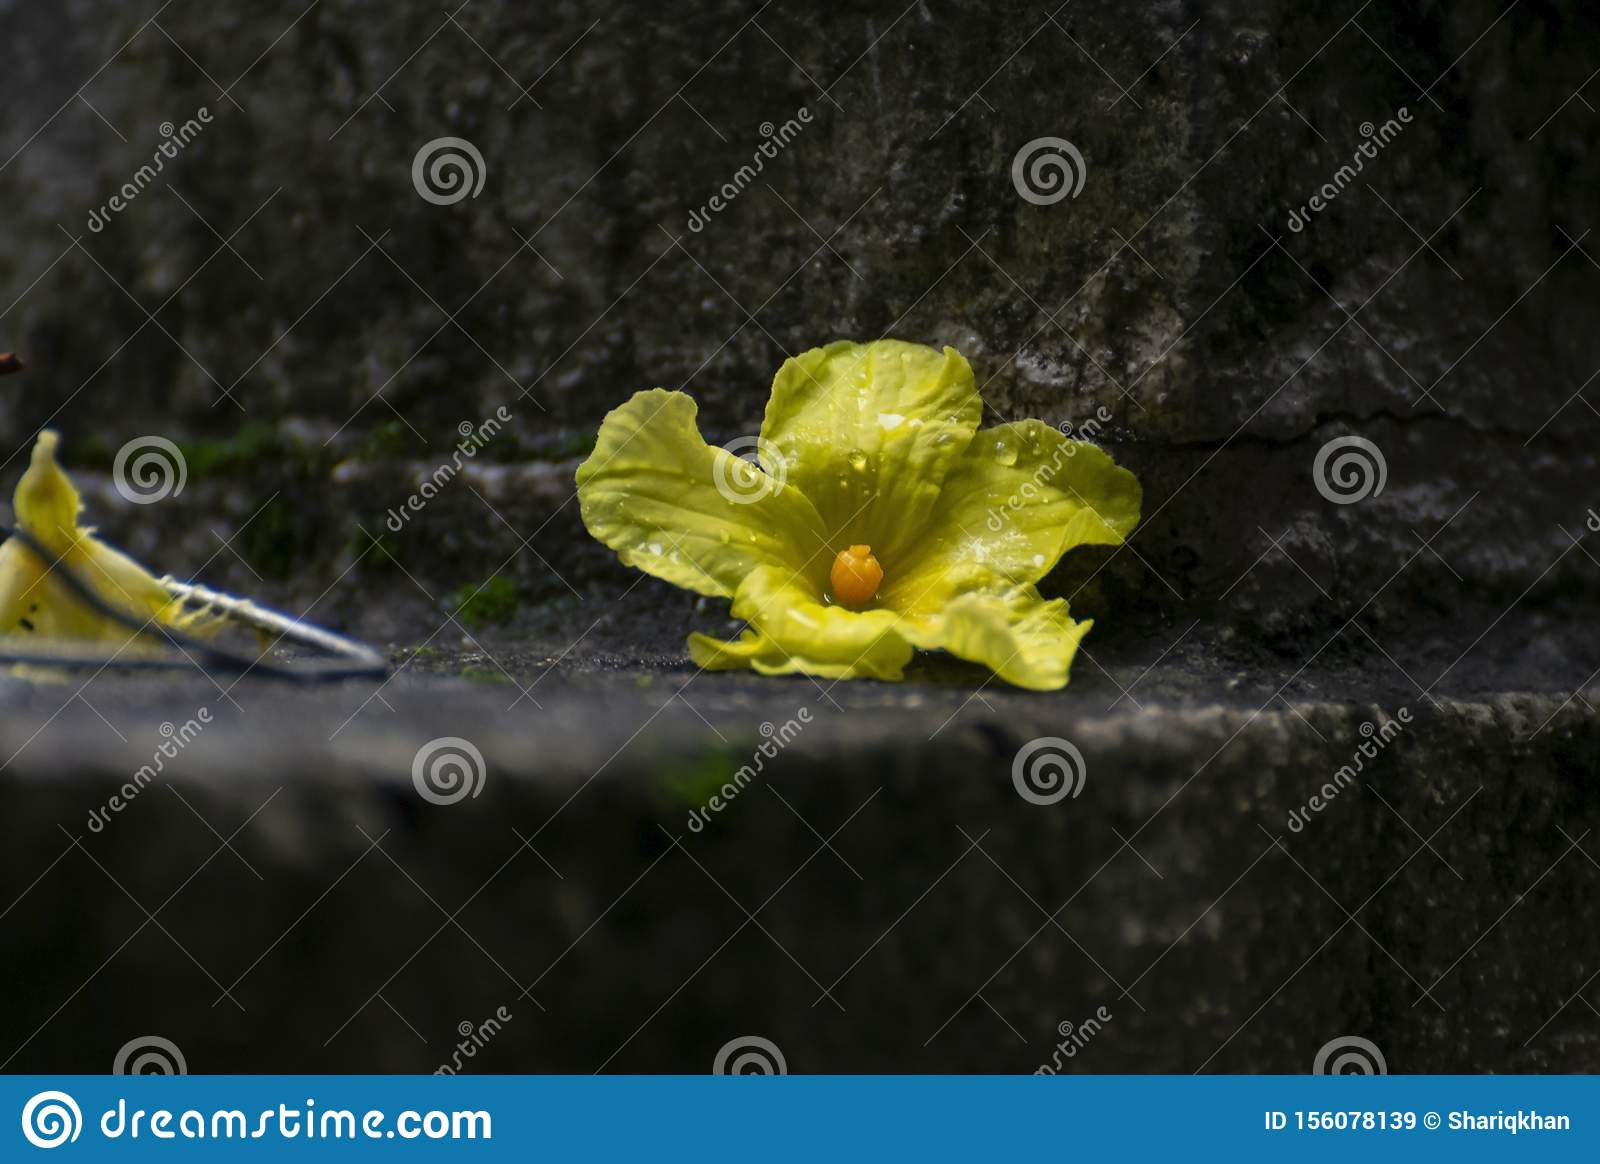 Yellow Flower Laying on Ground